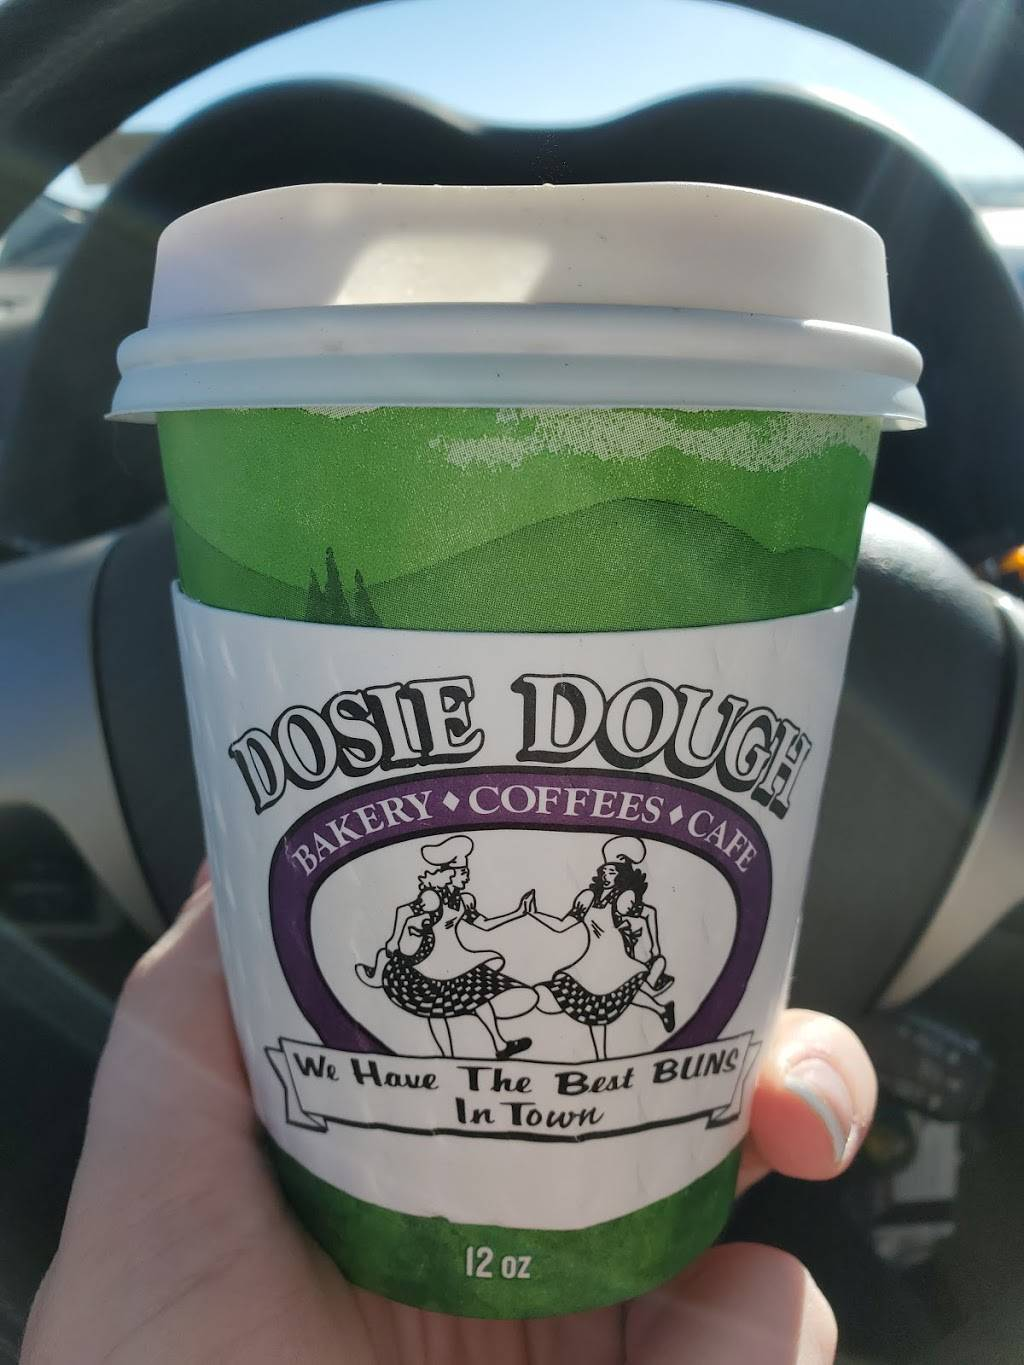 Dosie Dough | bakery | 45 S Broad St, Lititz, PA 17543, USA | 7176262266 OR +1 717-626-2266